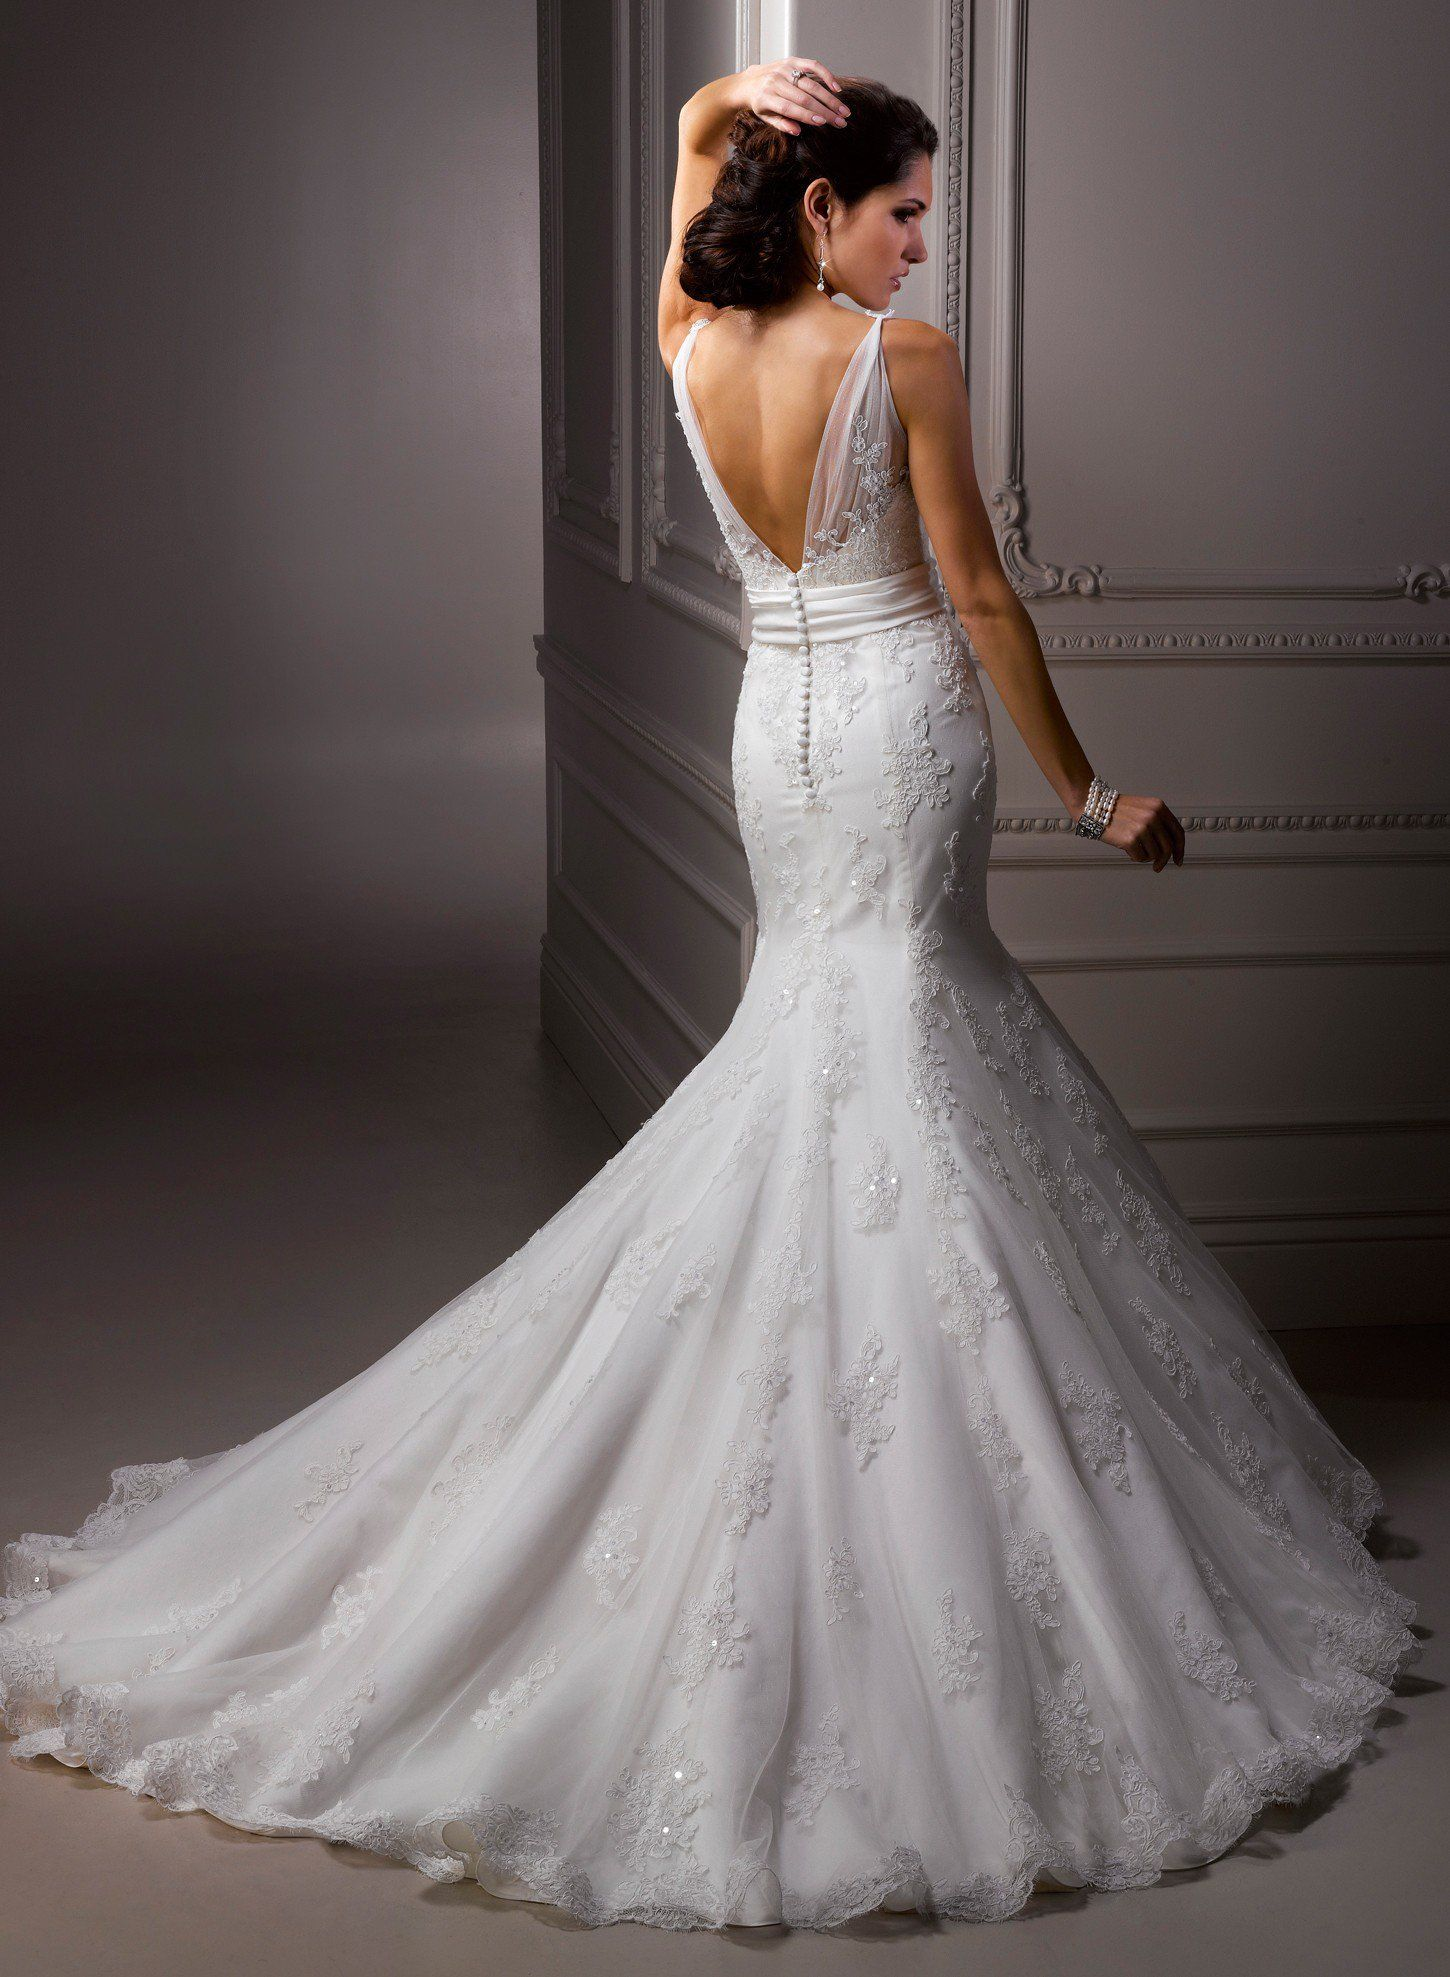 wedding dress mermaid Amazing Mermaid Wedding Dresses Fashion Diva Design